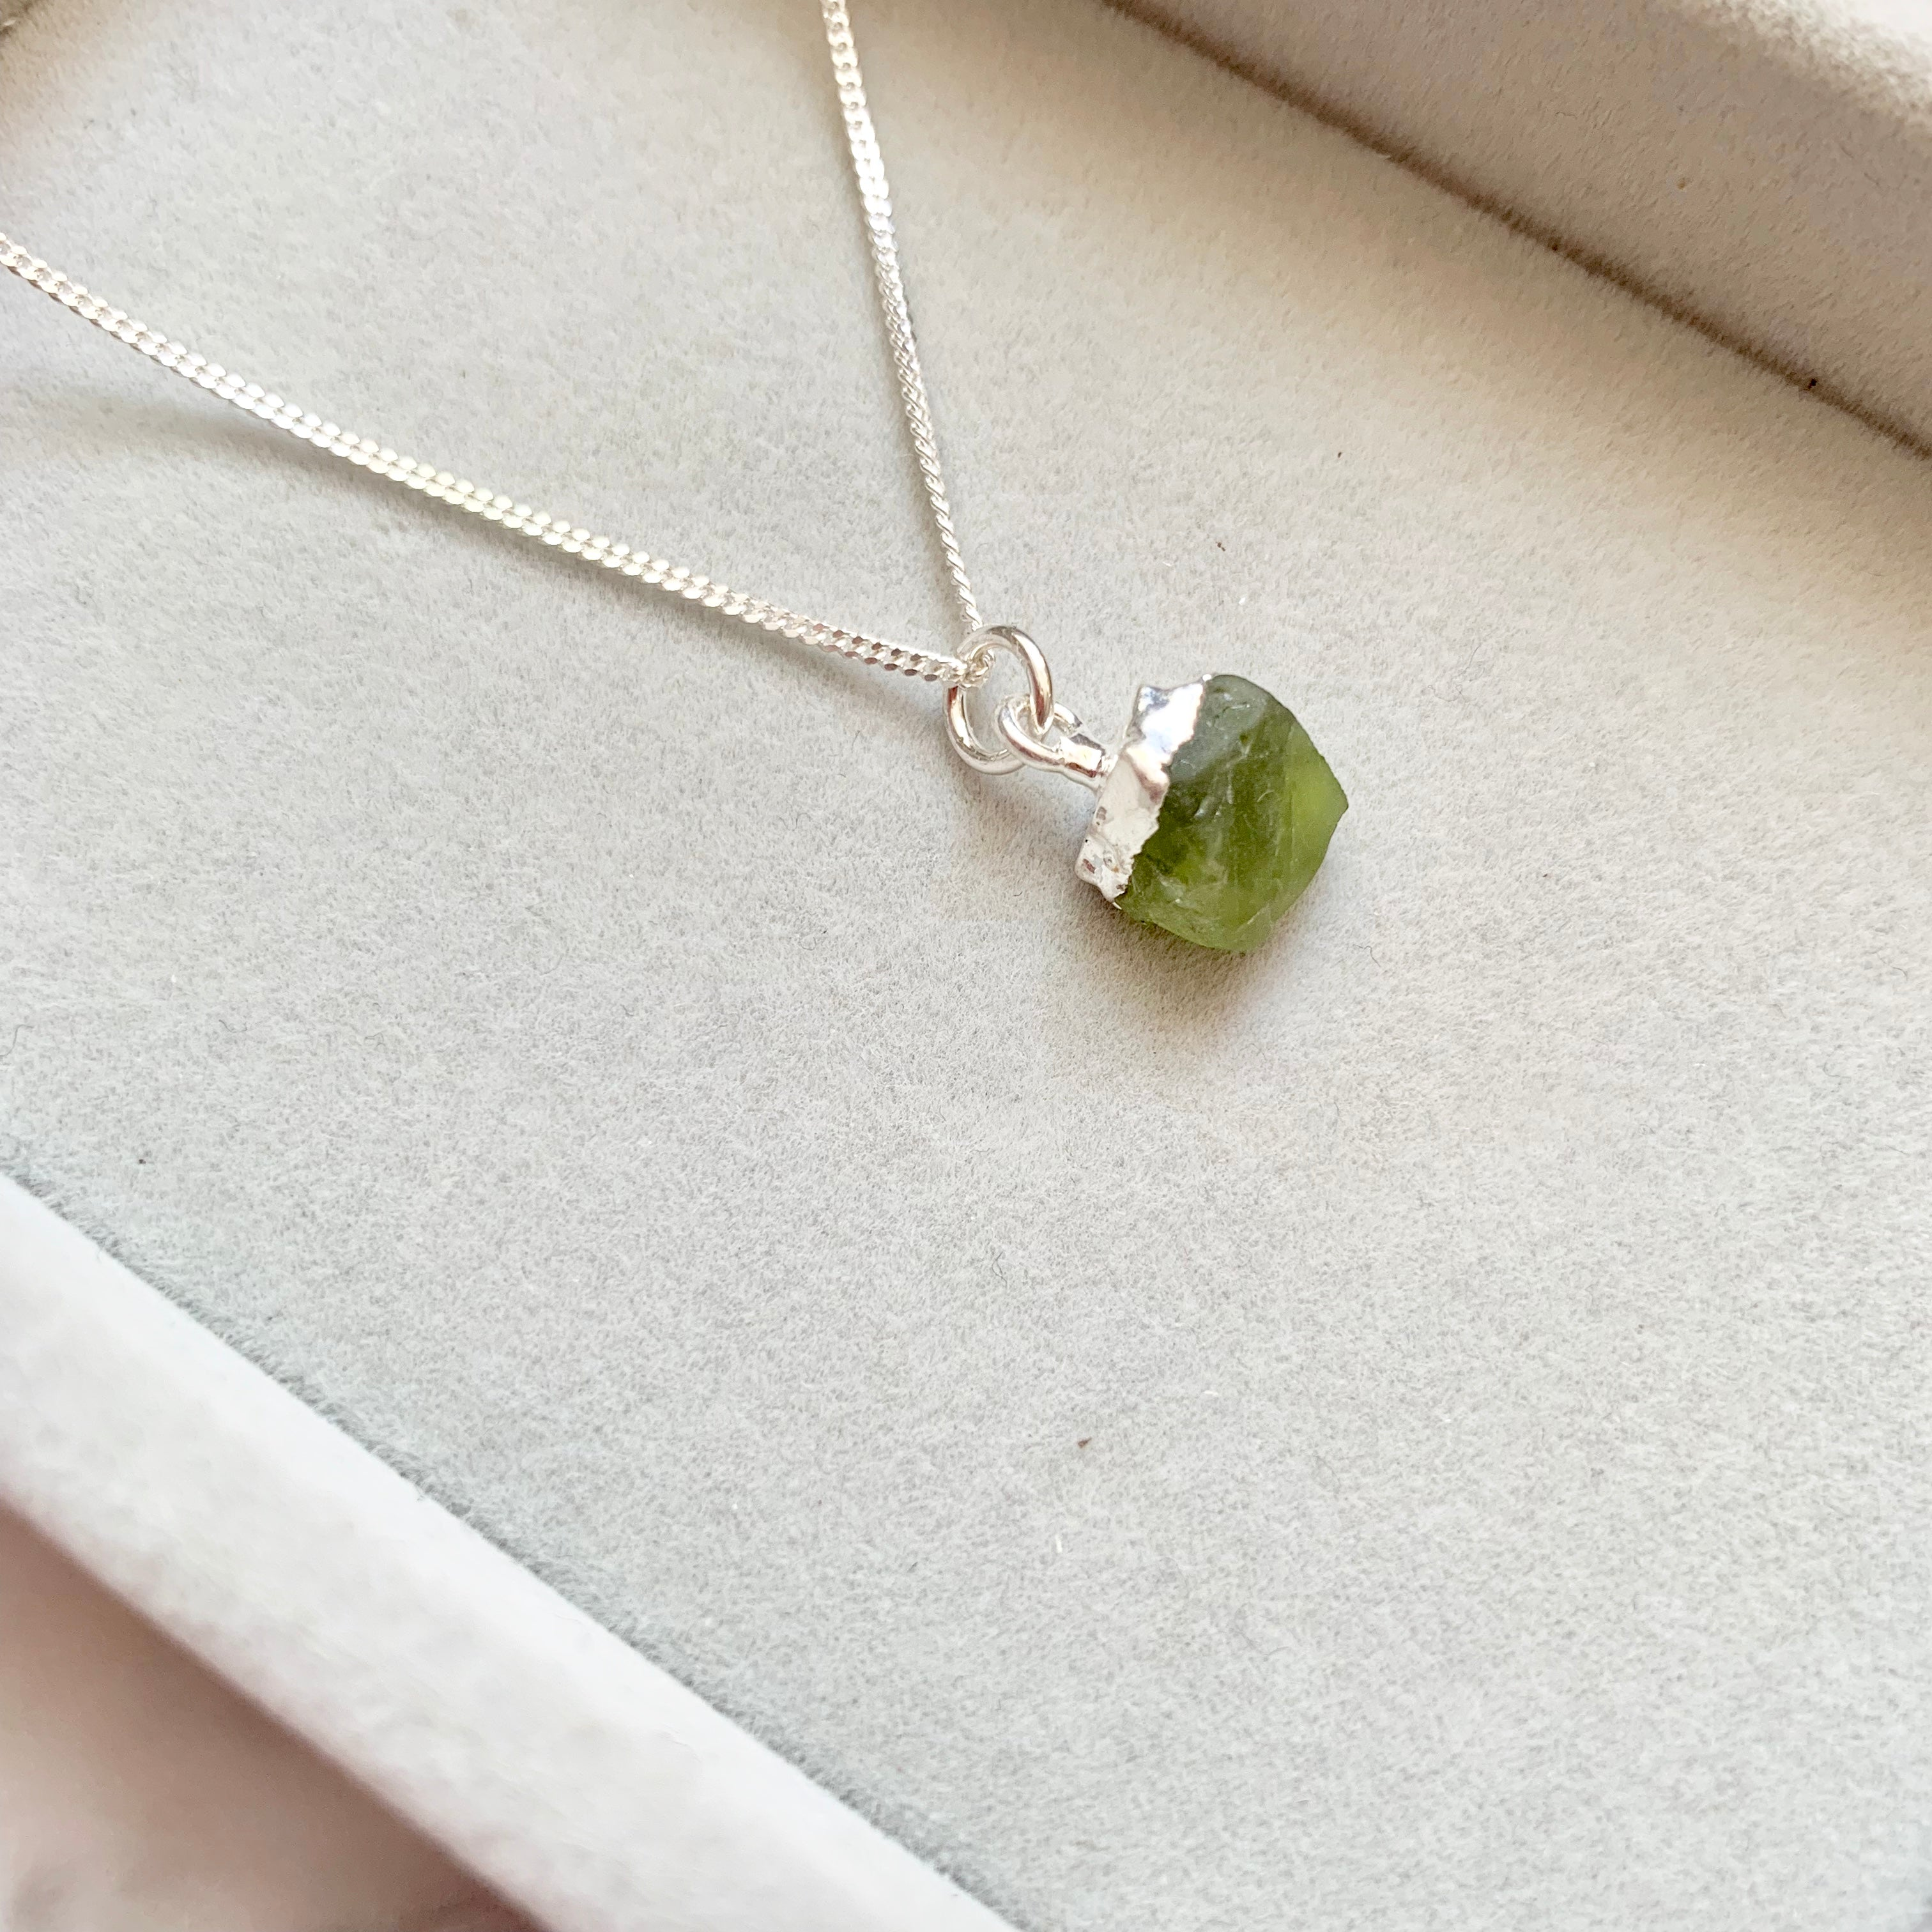 Birthstone Necklace - Silver - AUGUST, Peridot - Decadorn